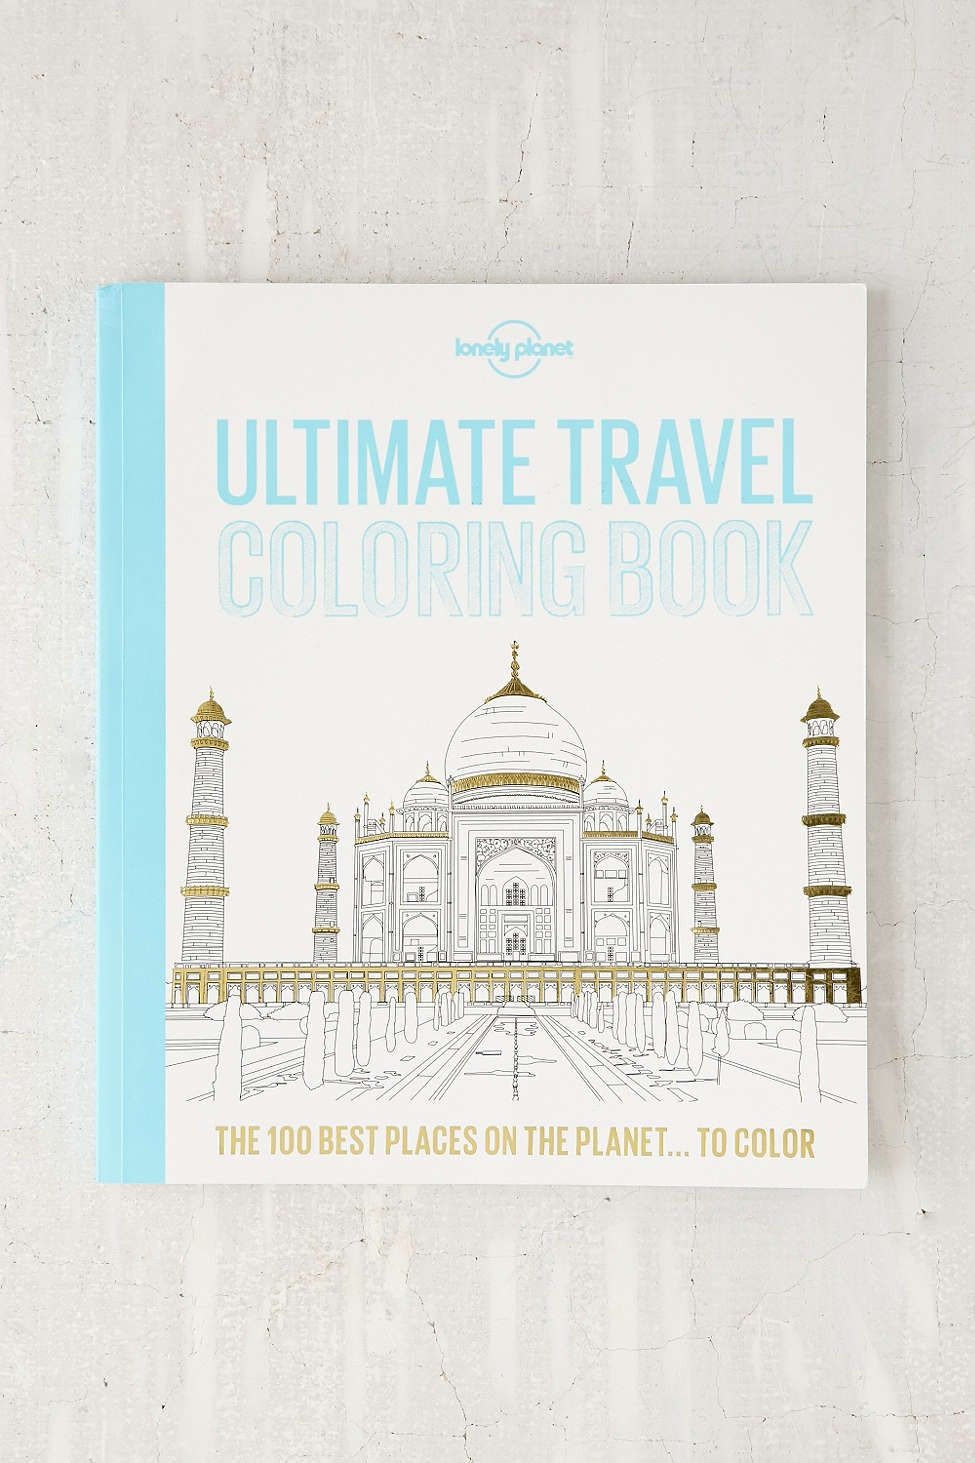 ultimate travel coloring book by lonely planet - Travel Coloring Book